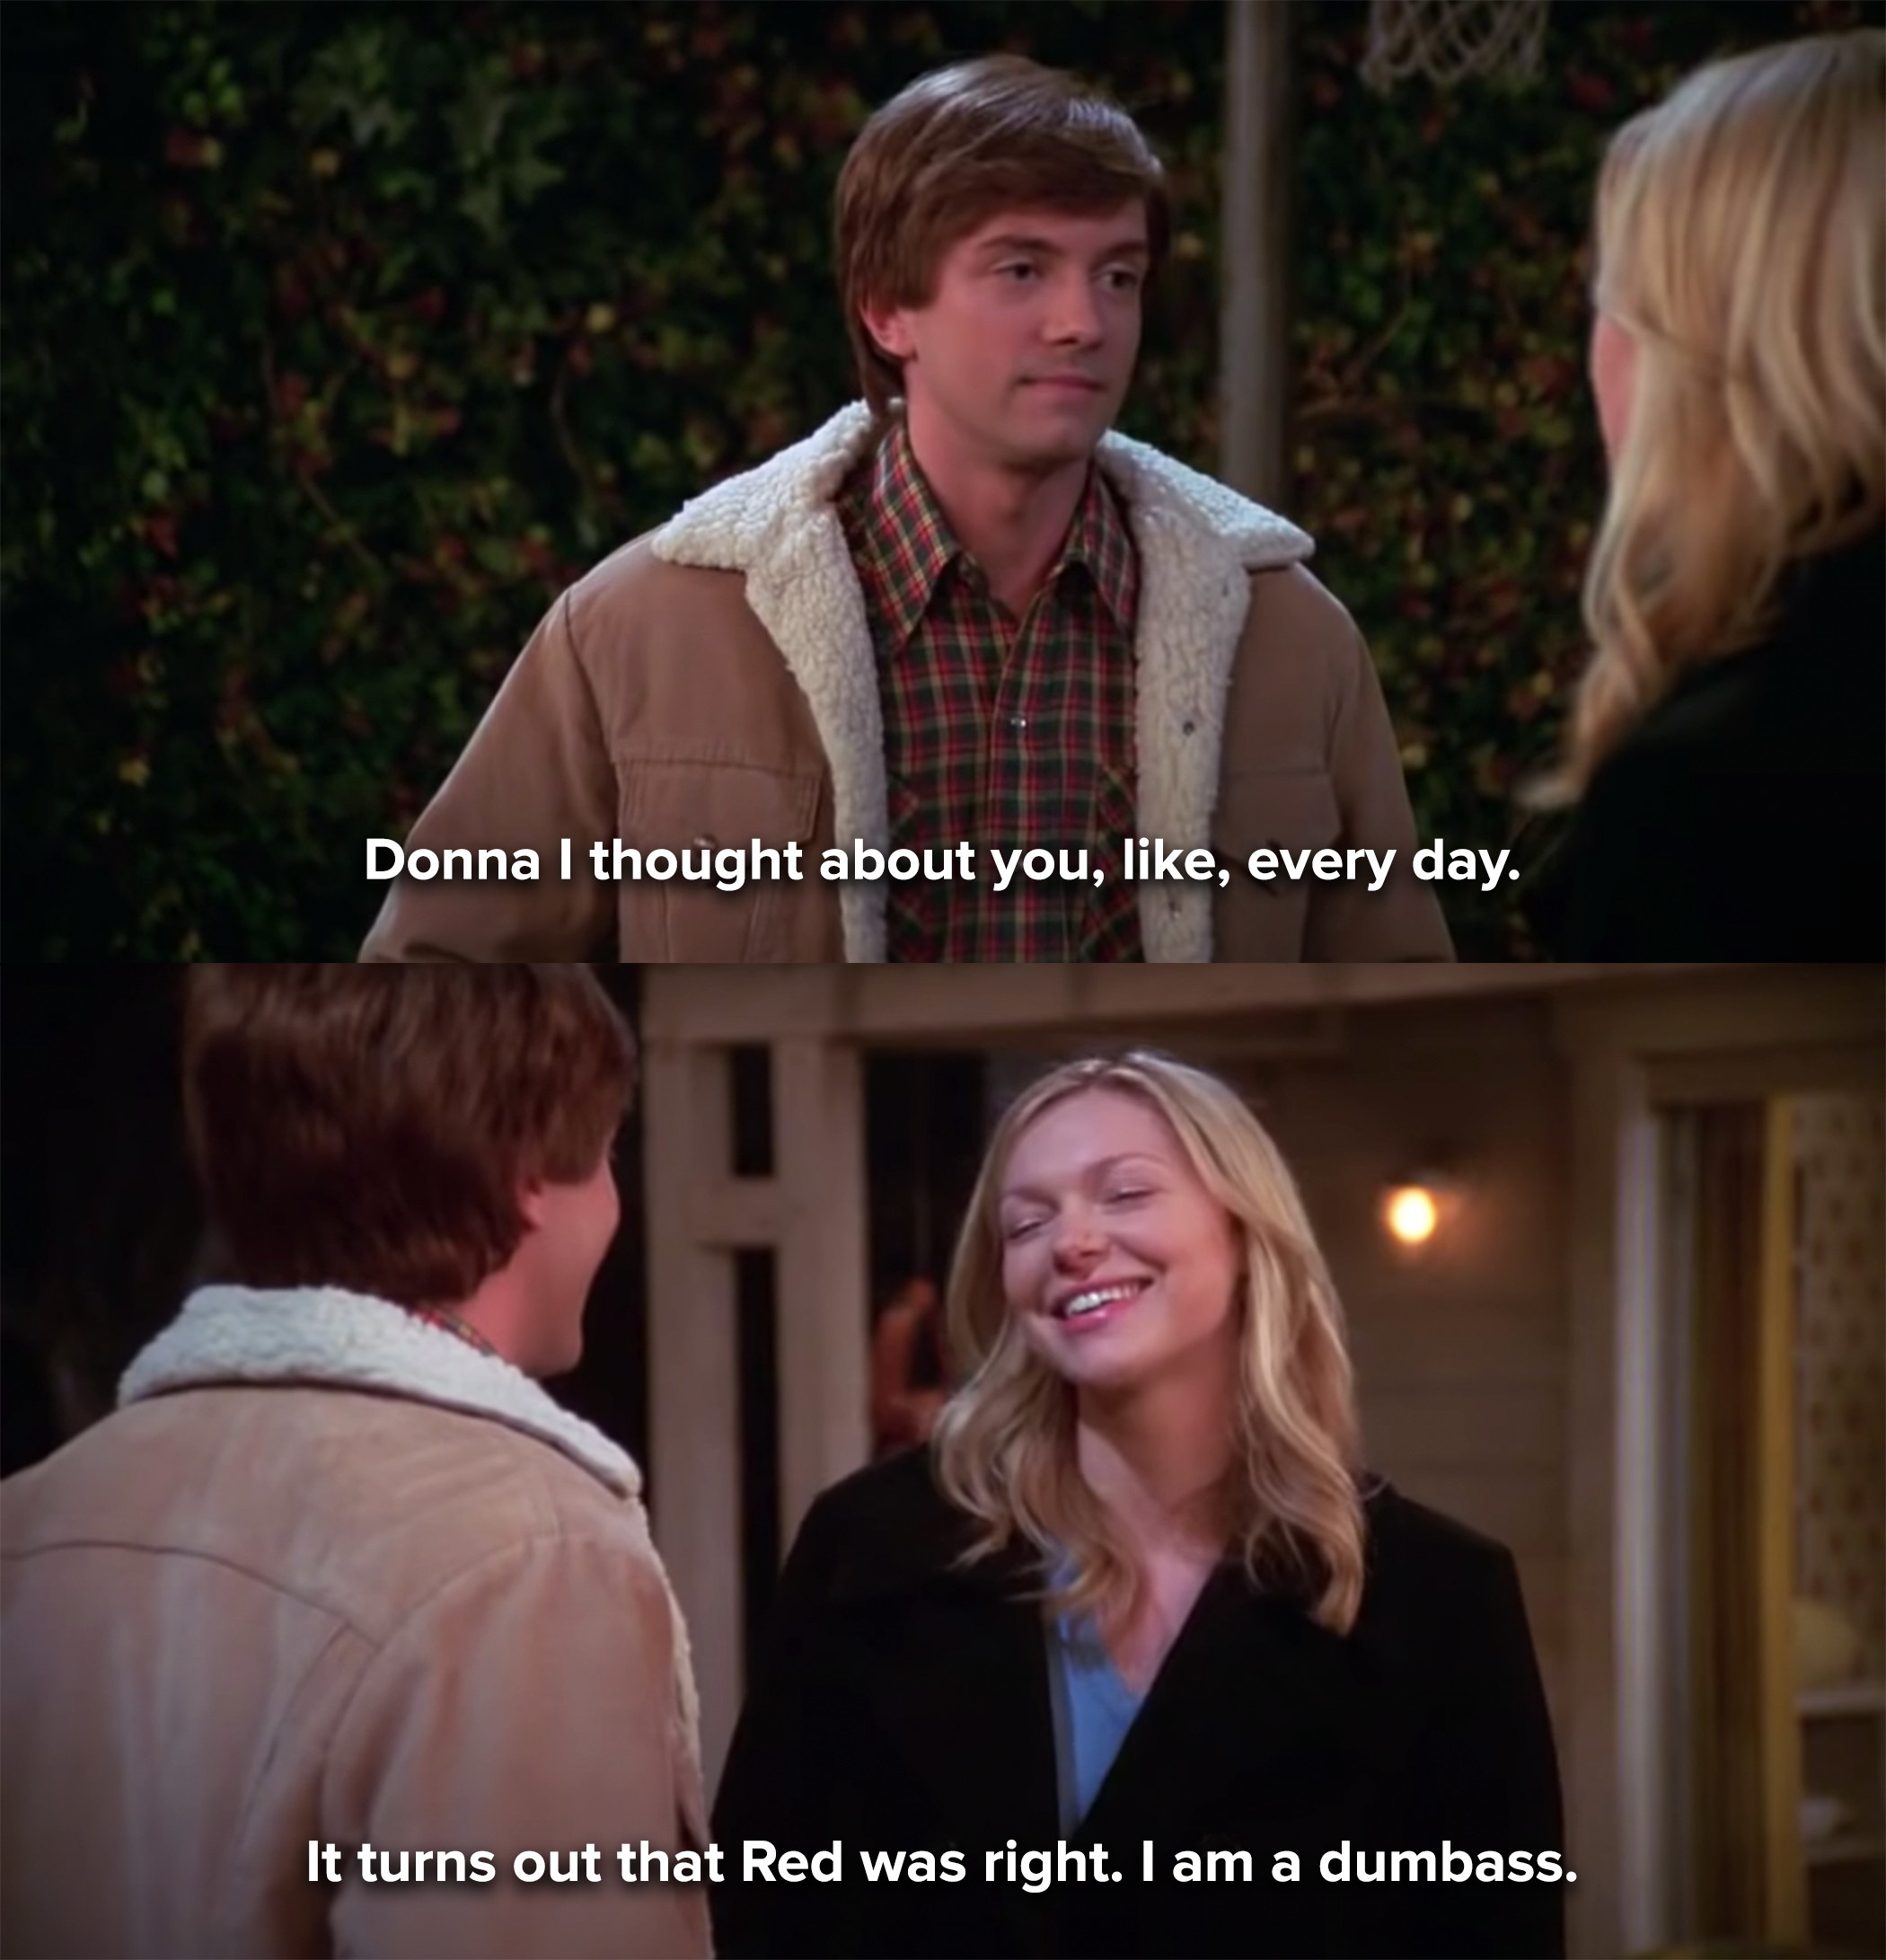 Eric tells Donna that Red was right about him being a dumbass